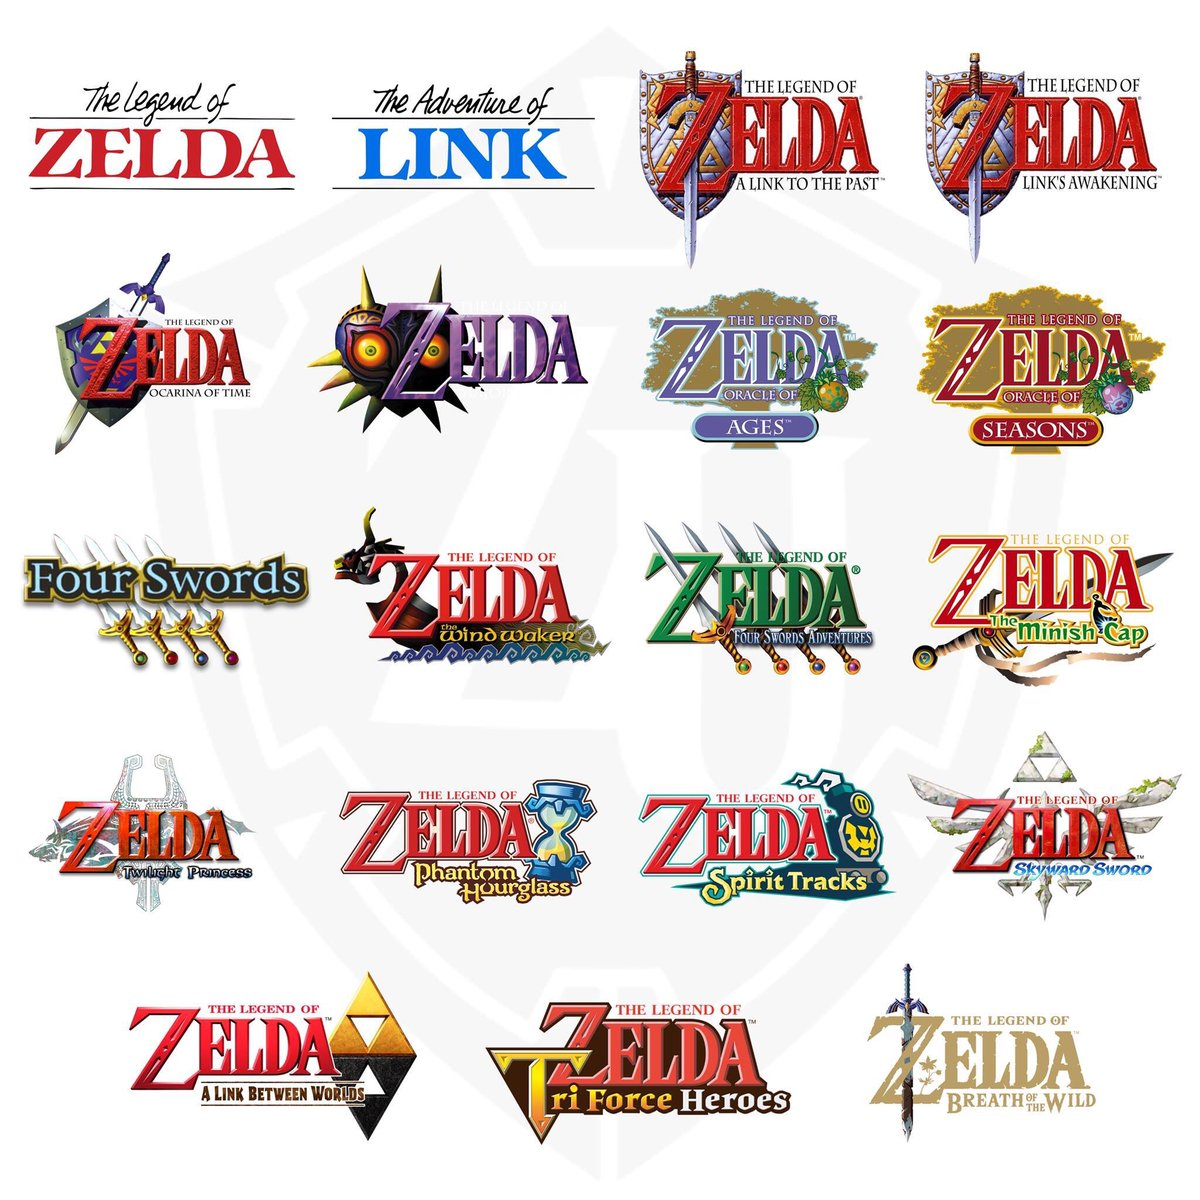 What are your Top 3 Legend of Zelda games?